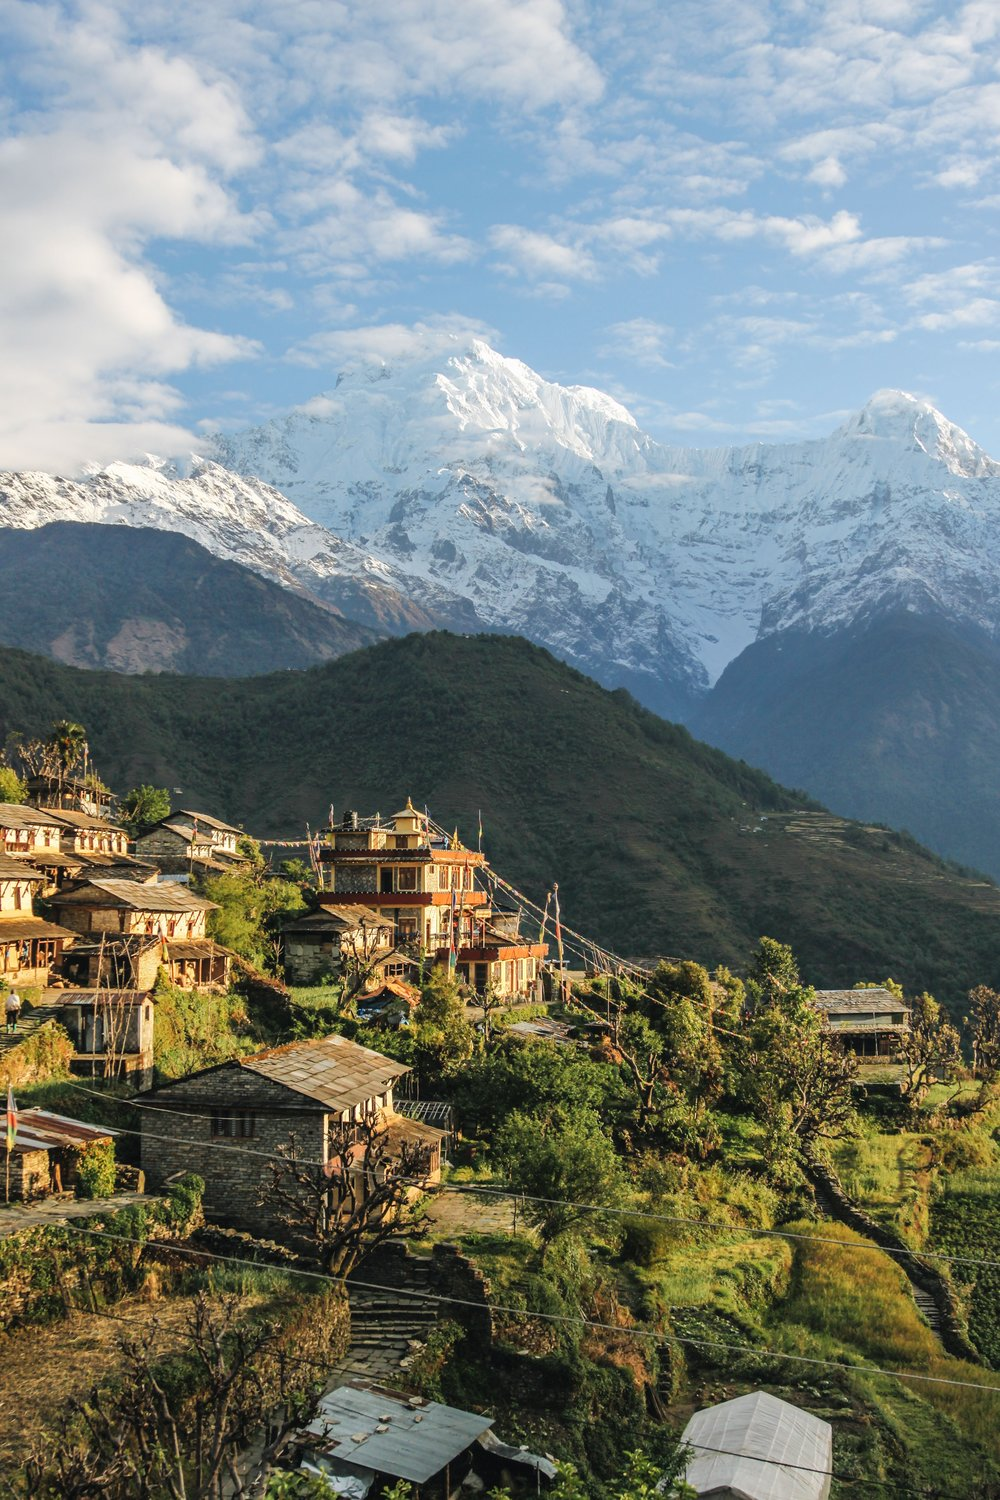 Photo of Nepalese mountain village by Giuseppe Mondì on Unsplash